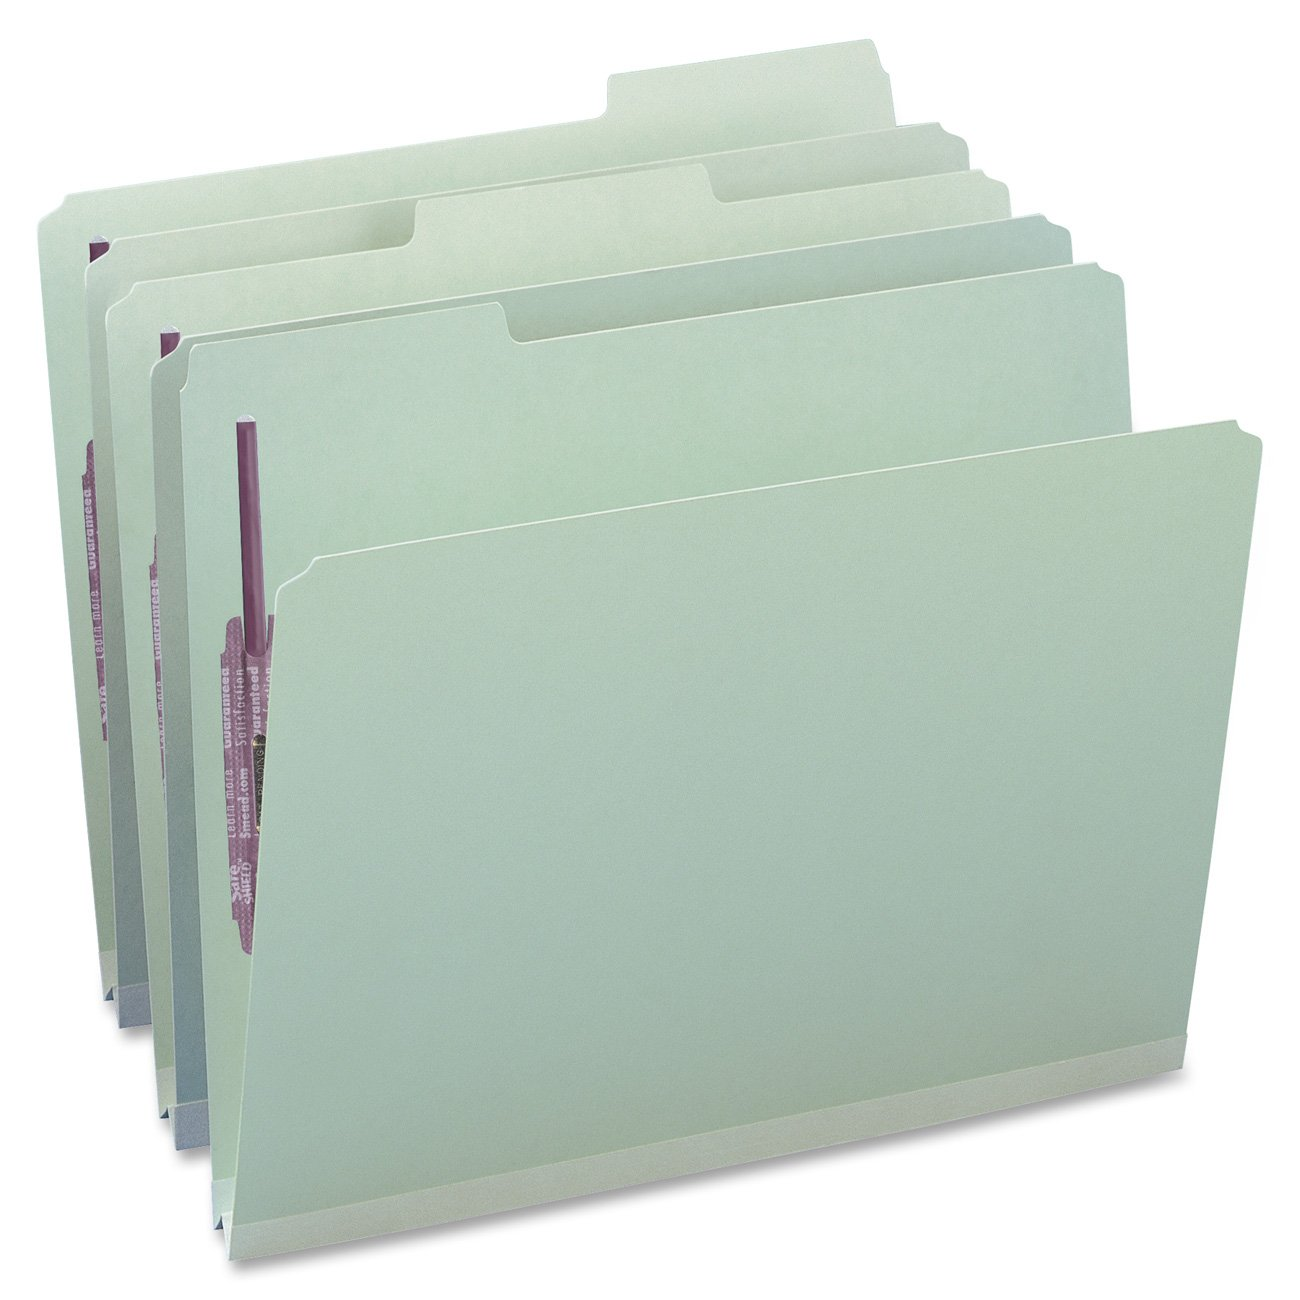 Smead Pressboard Fastener File Folder with SafeSHIELD Fasteners, 2 Fasteners, 1/3-Cut Tab, 1'' Expansion, Letter Size, Gray/Green, 25 per Box (14931)